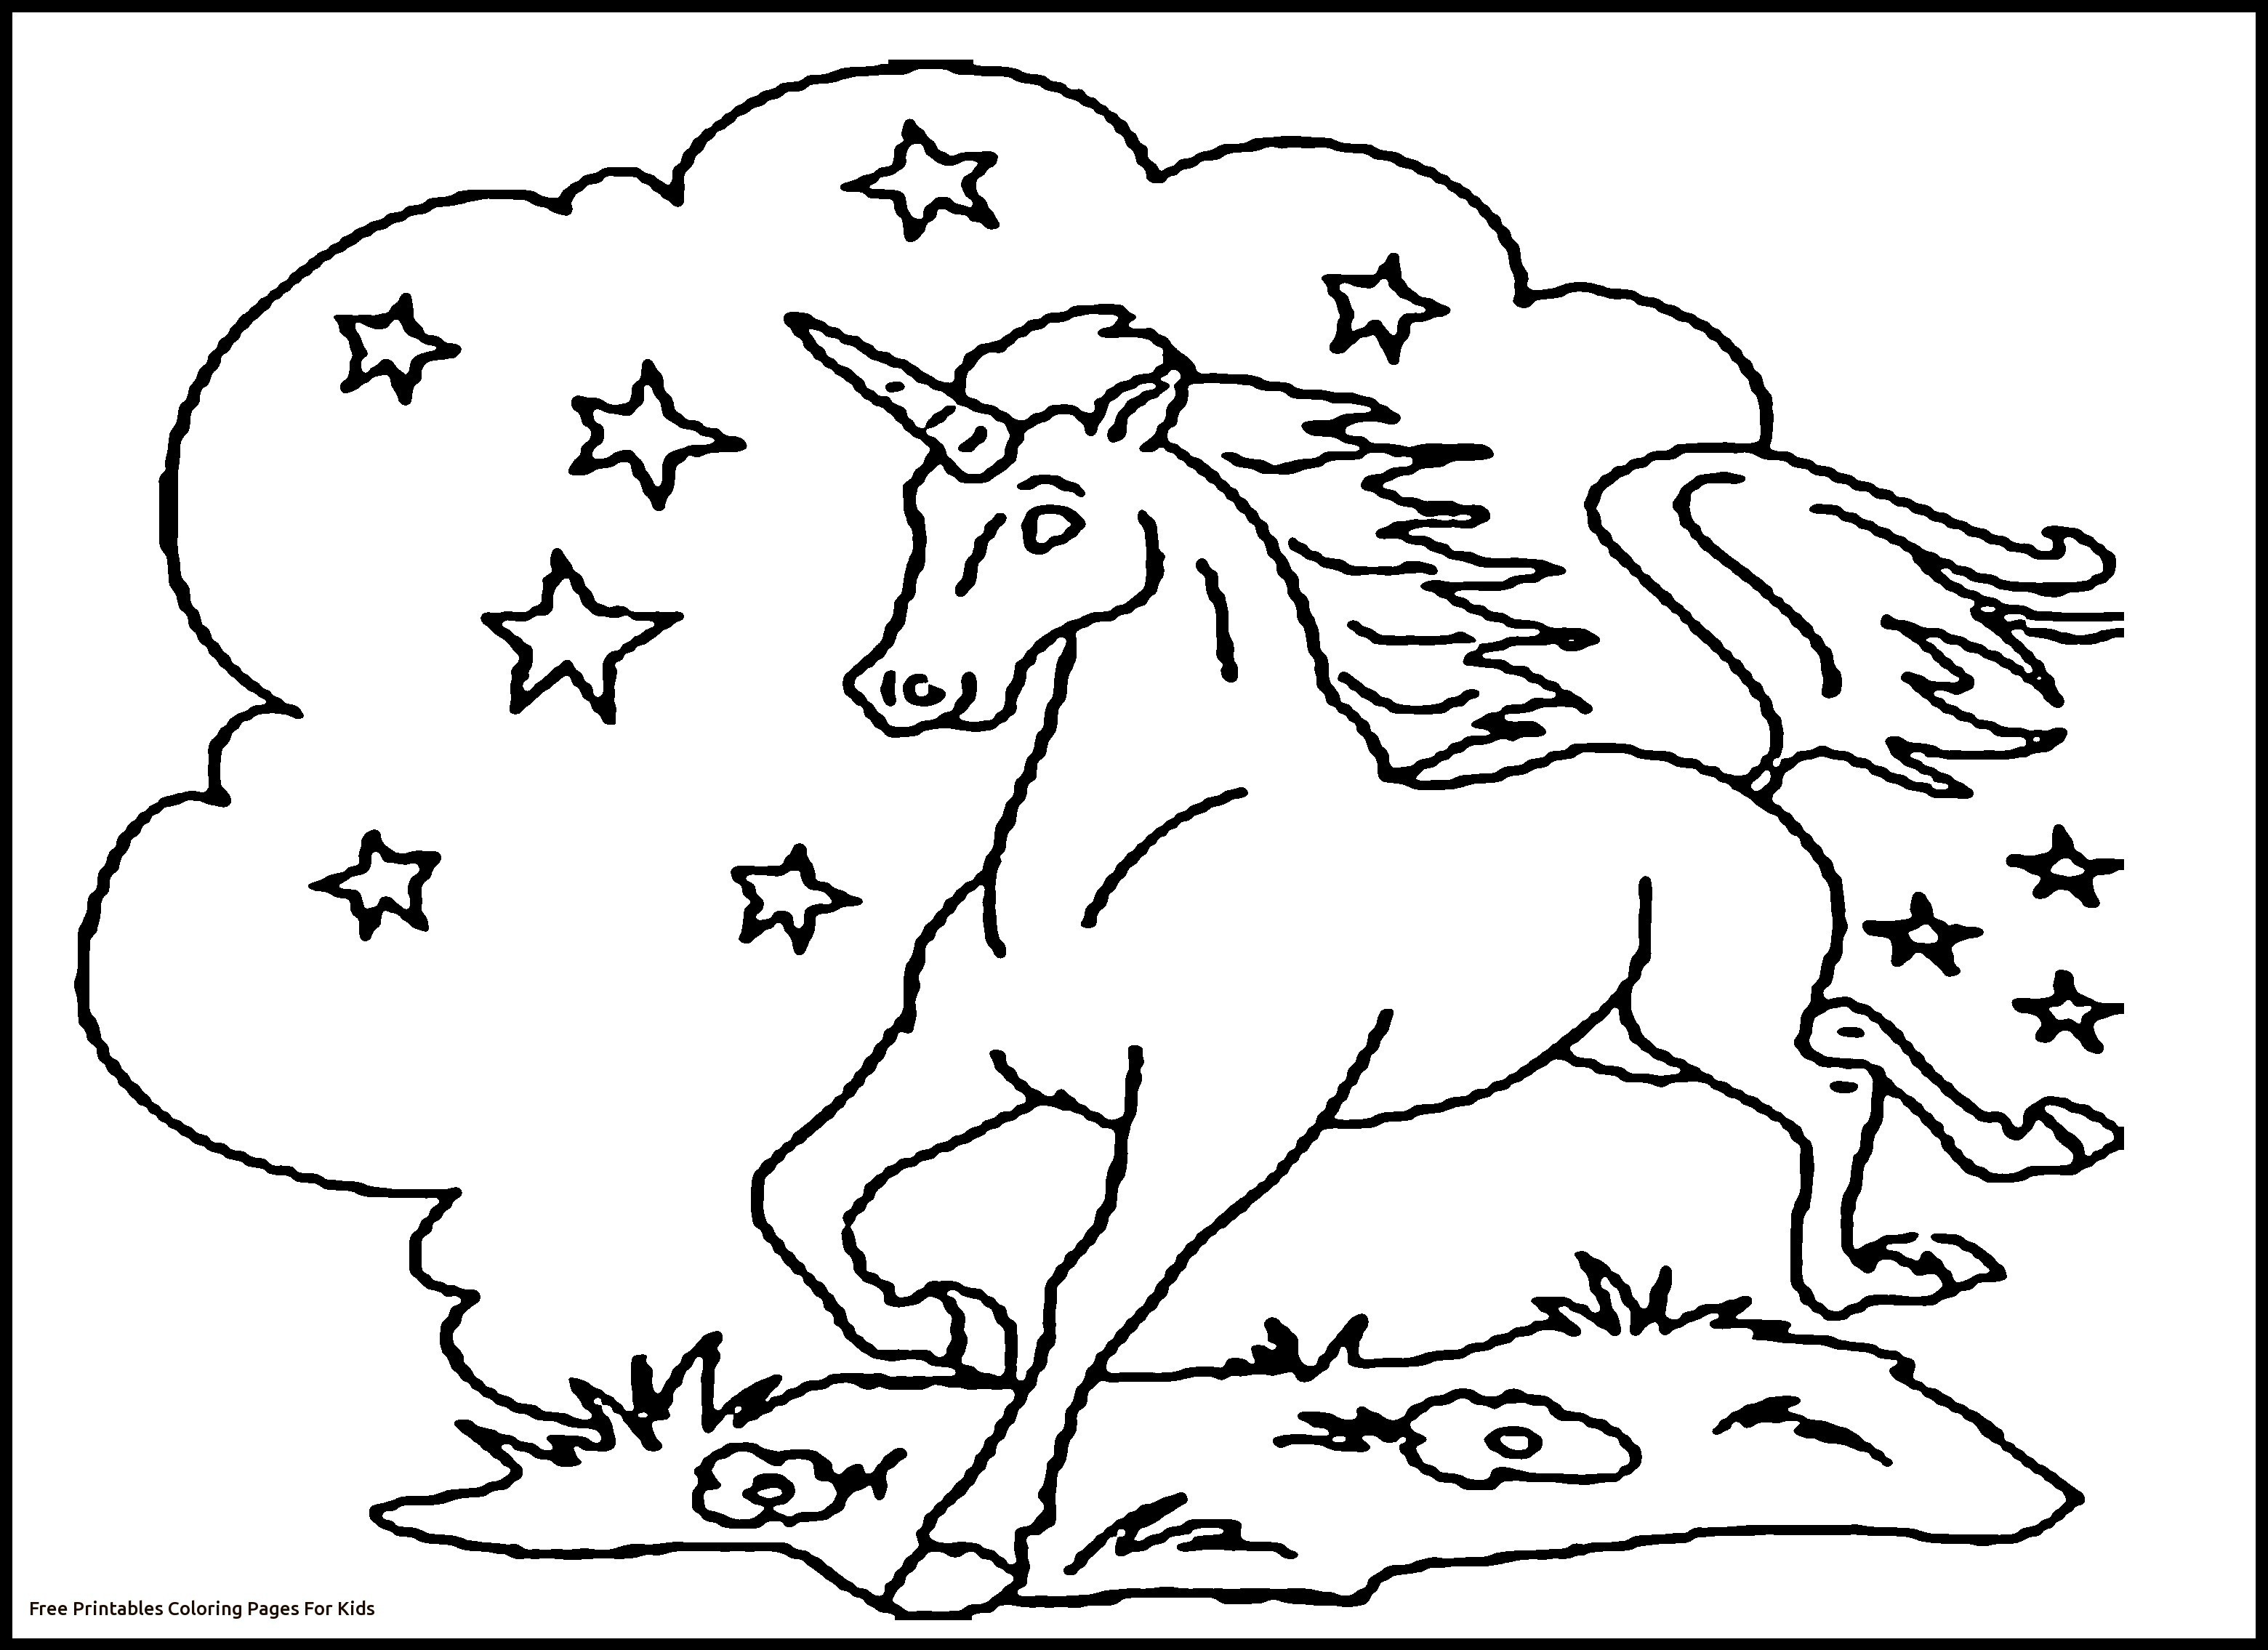 Coloring Pages Print Gallery 4o - Free For Children